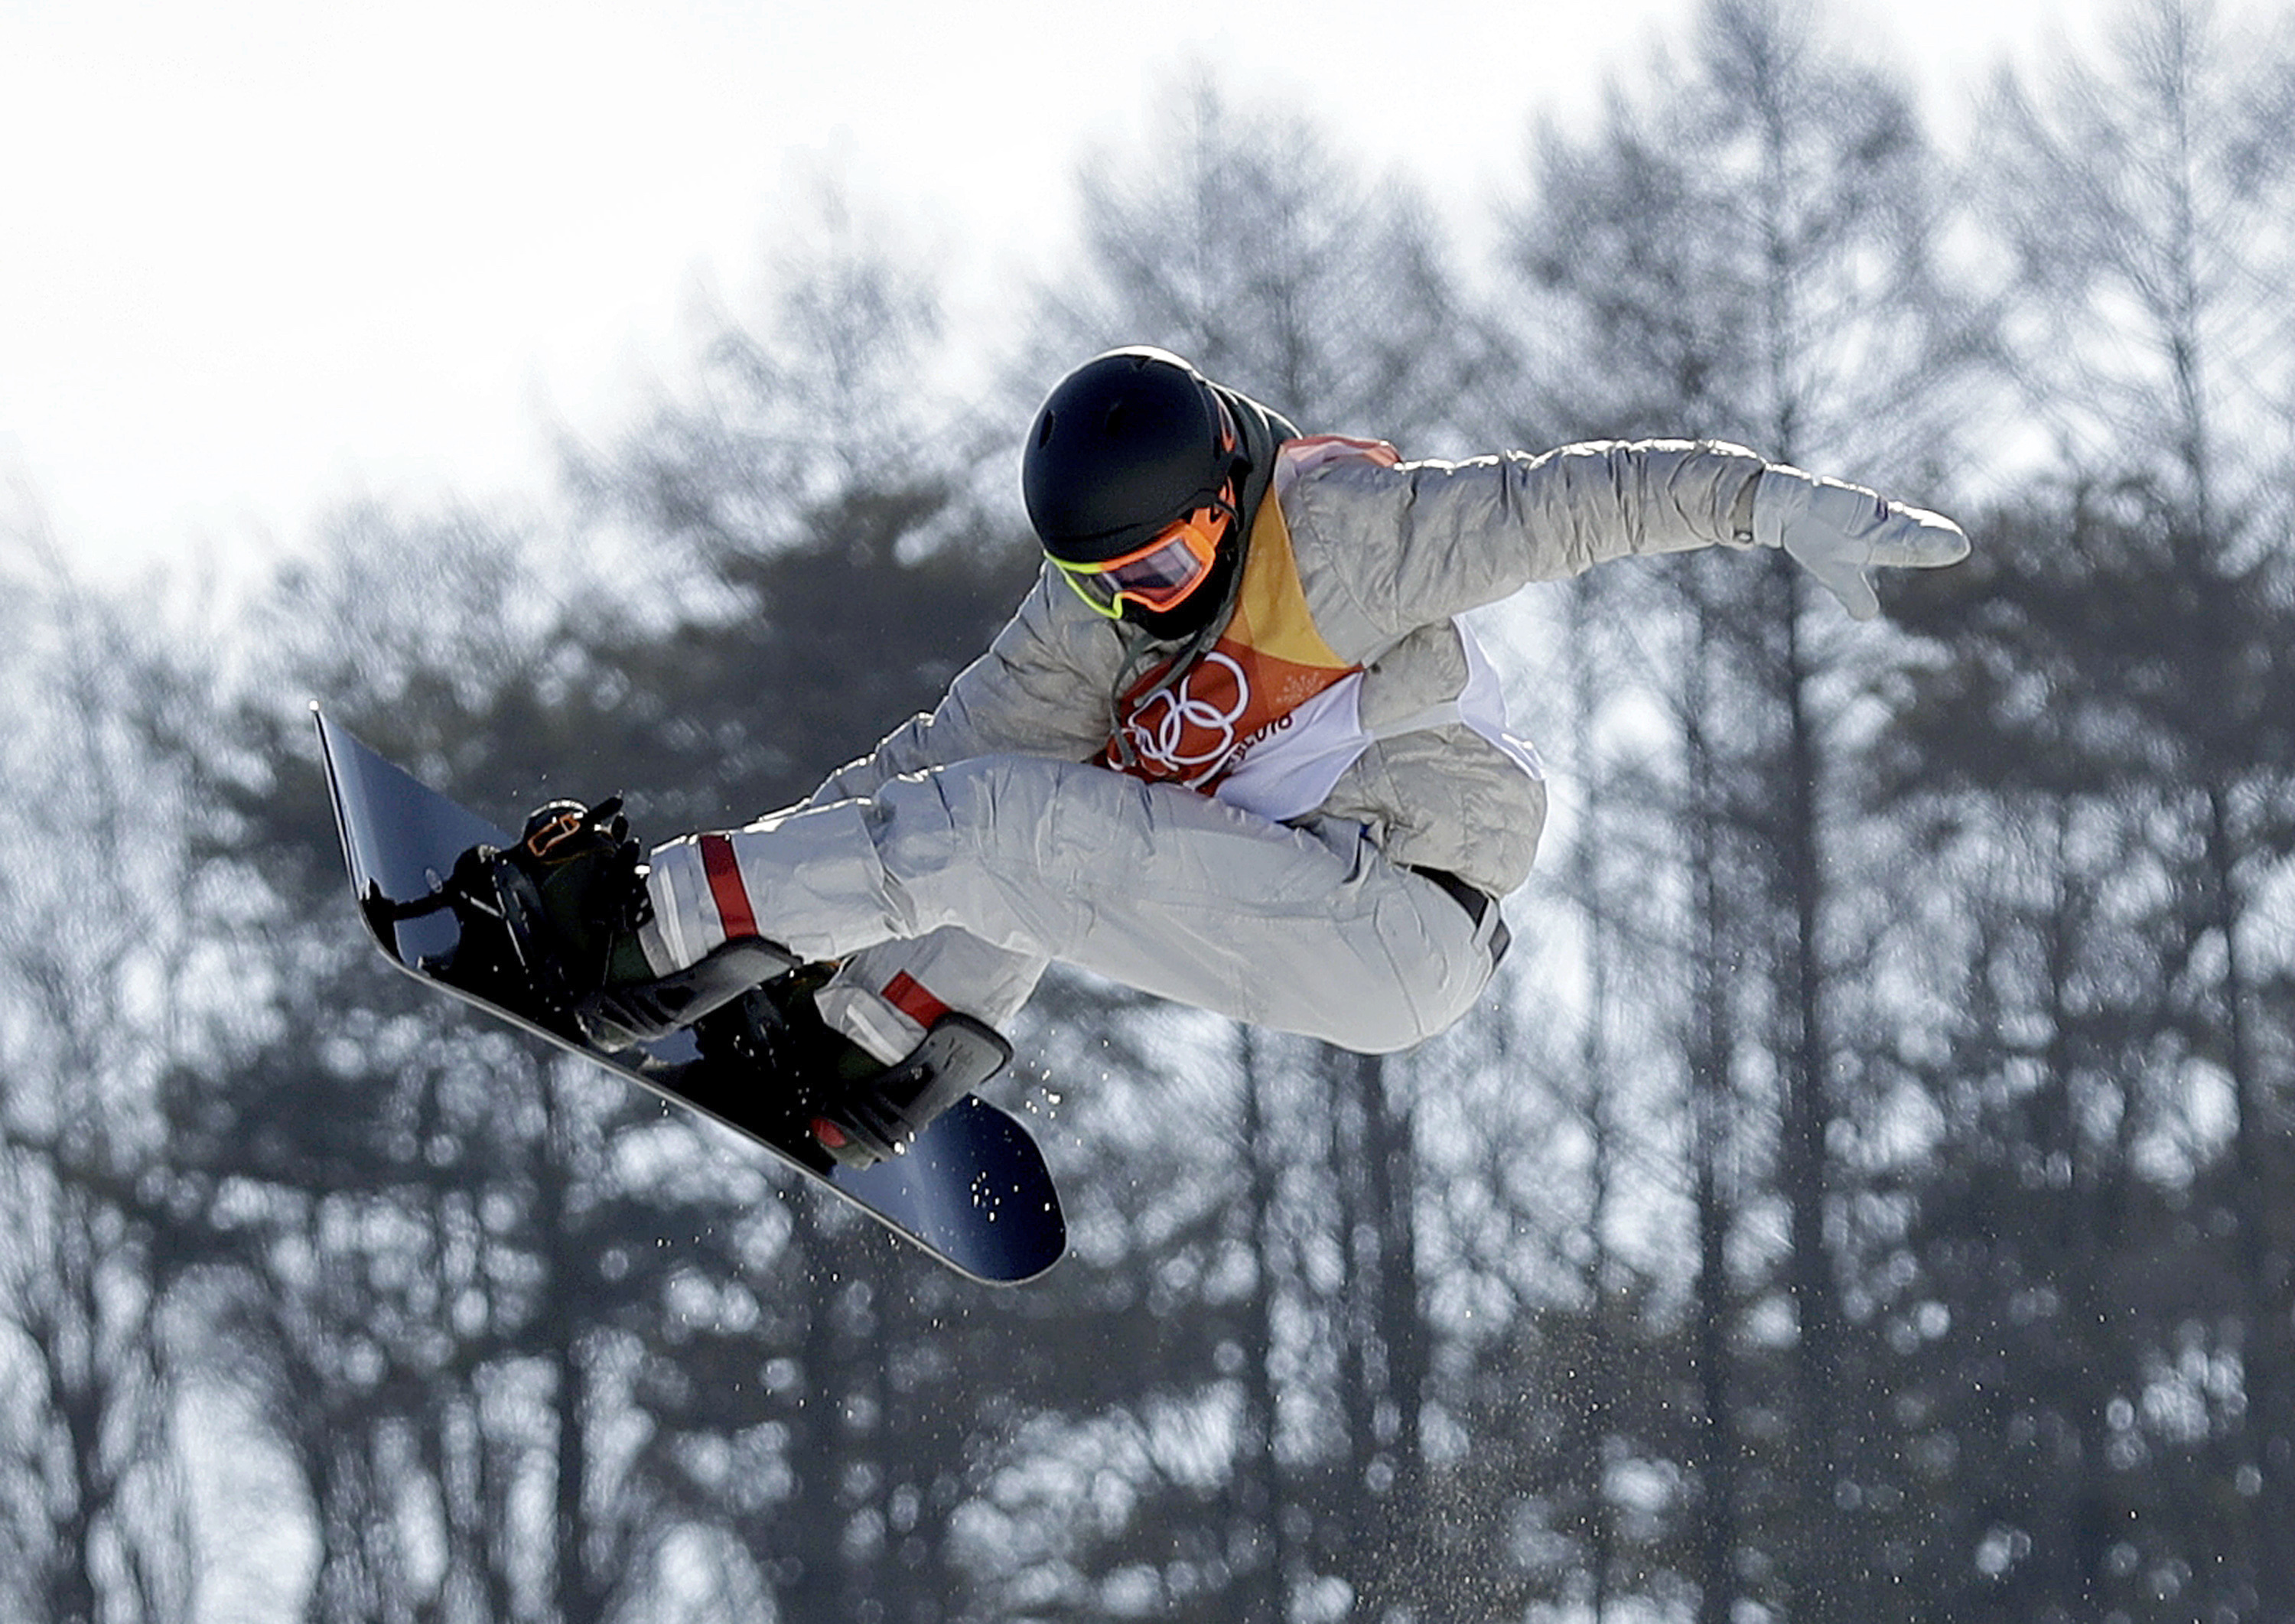 Photo: Red Gerard Snowboard 2018 Winter Olympics (AP)